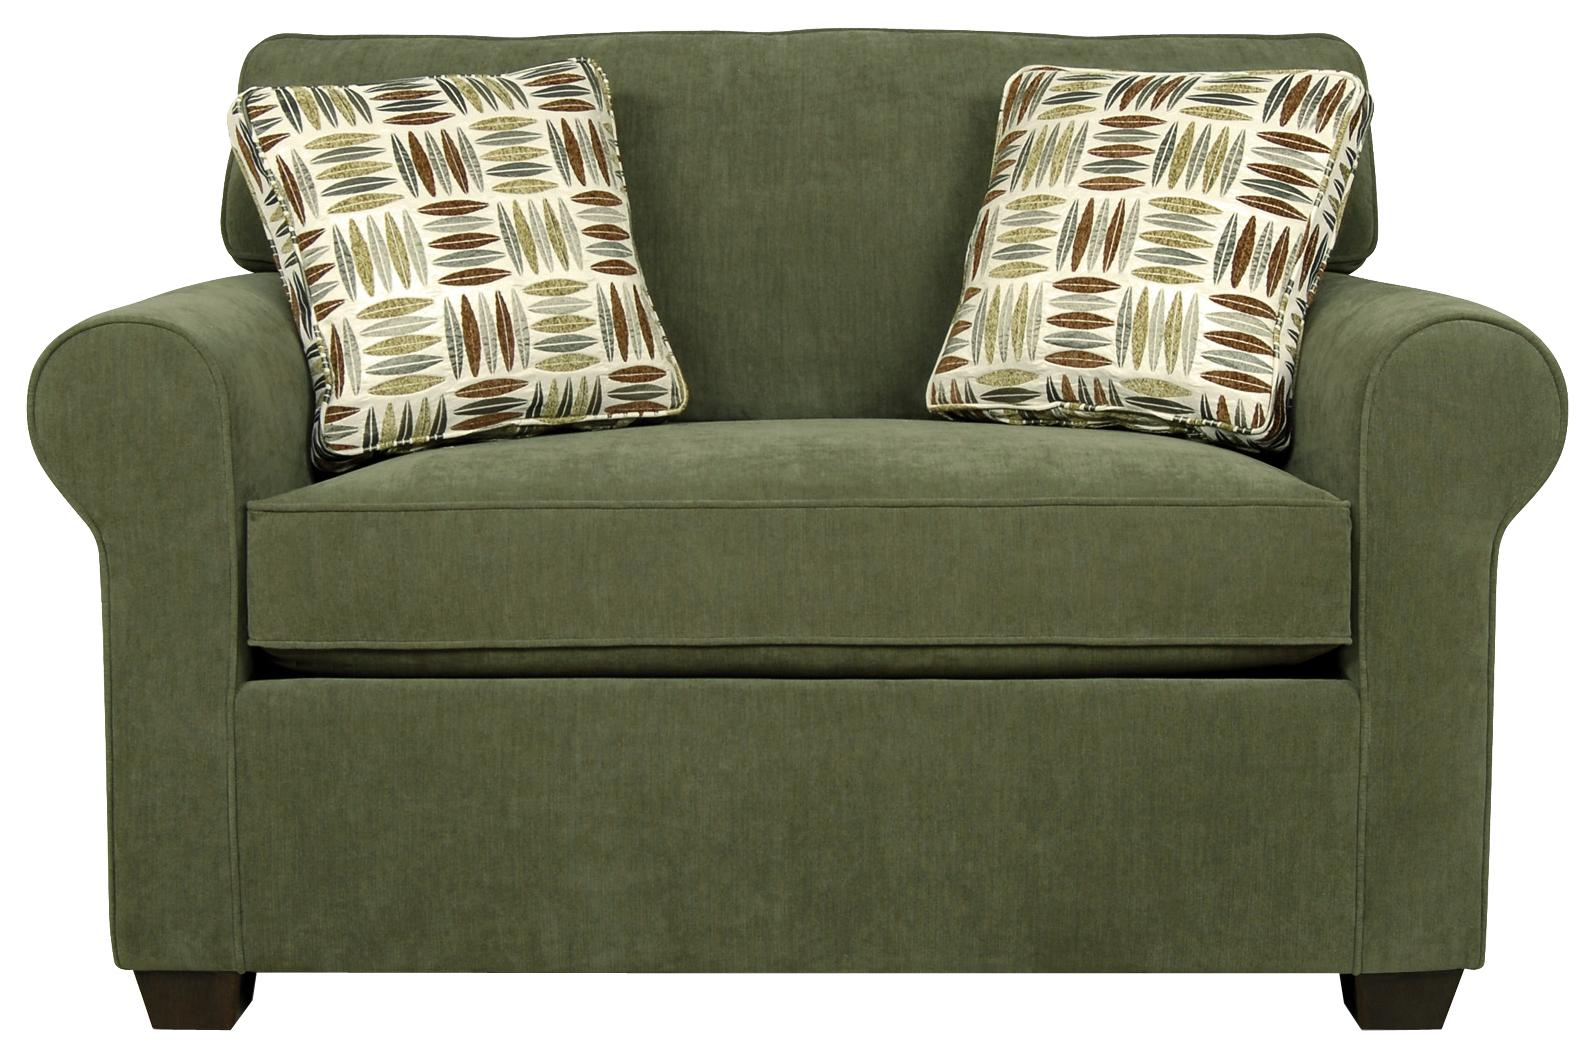 3 Green Selections for Twin Size Sofa Sleeper  HomesFeed